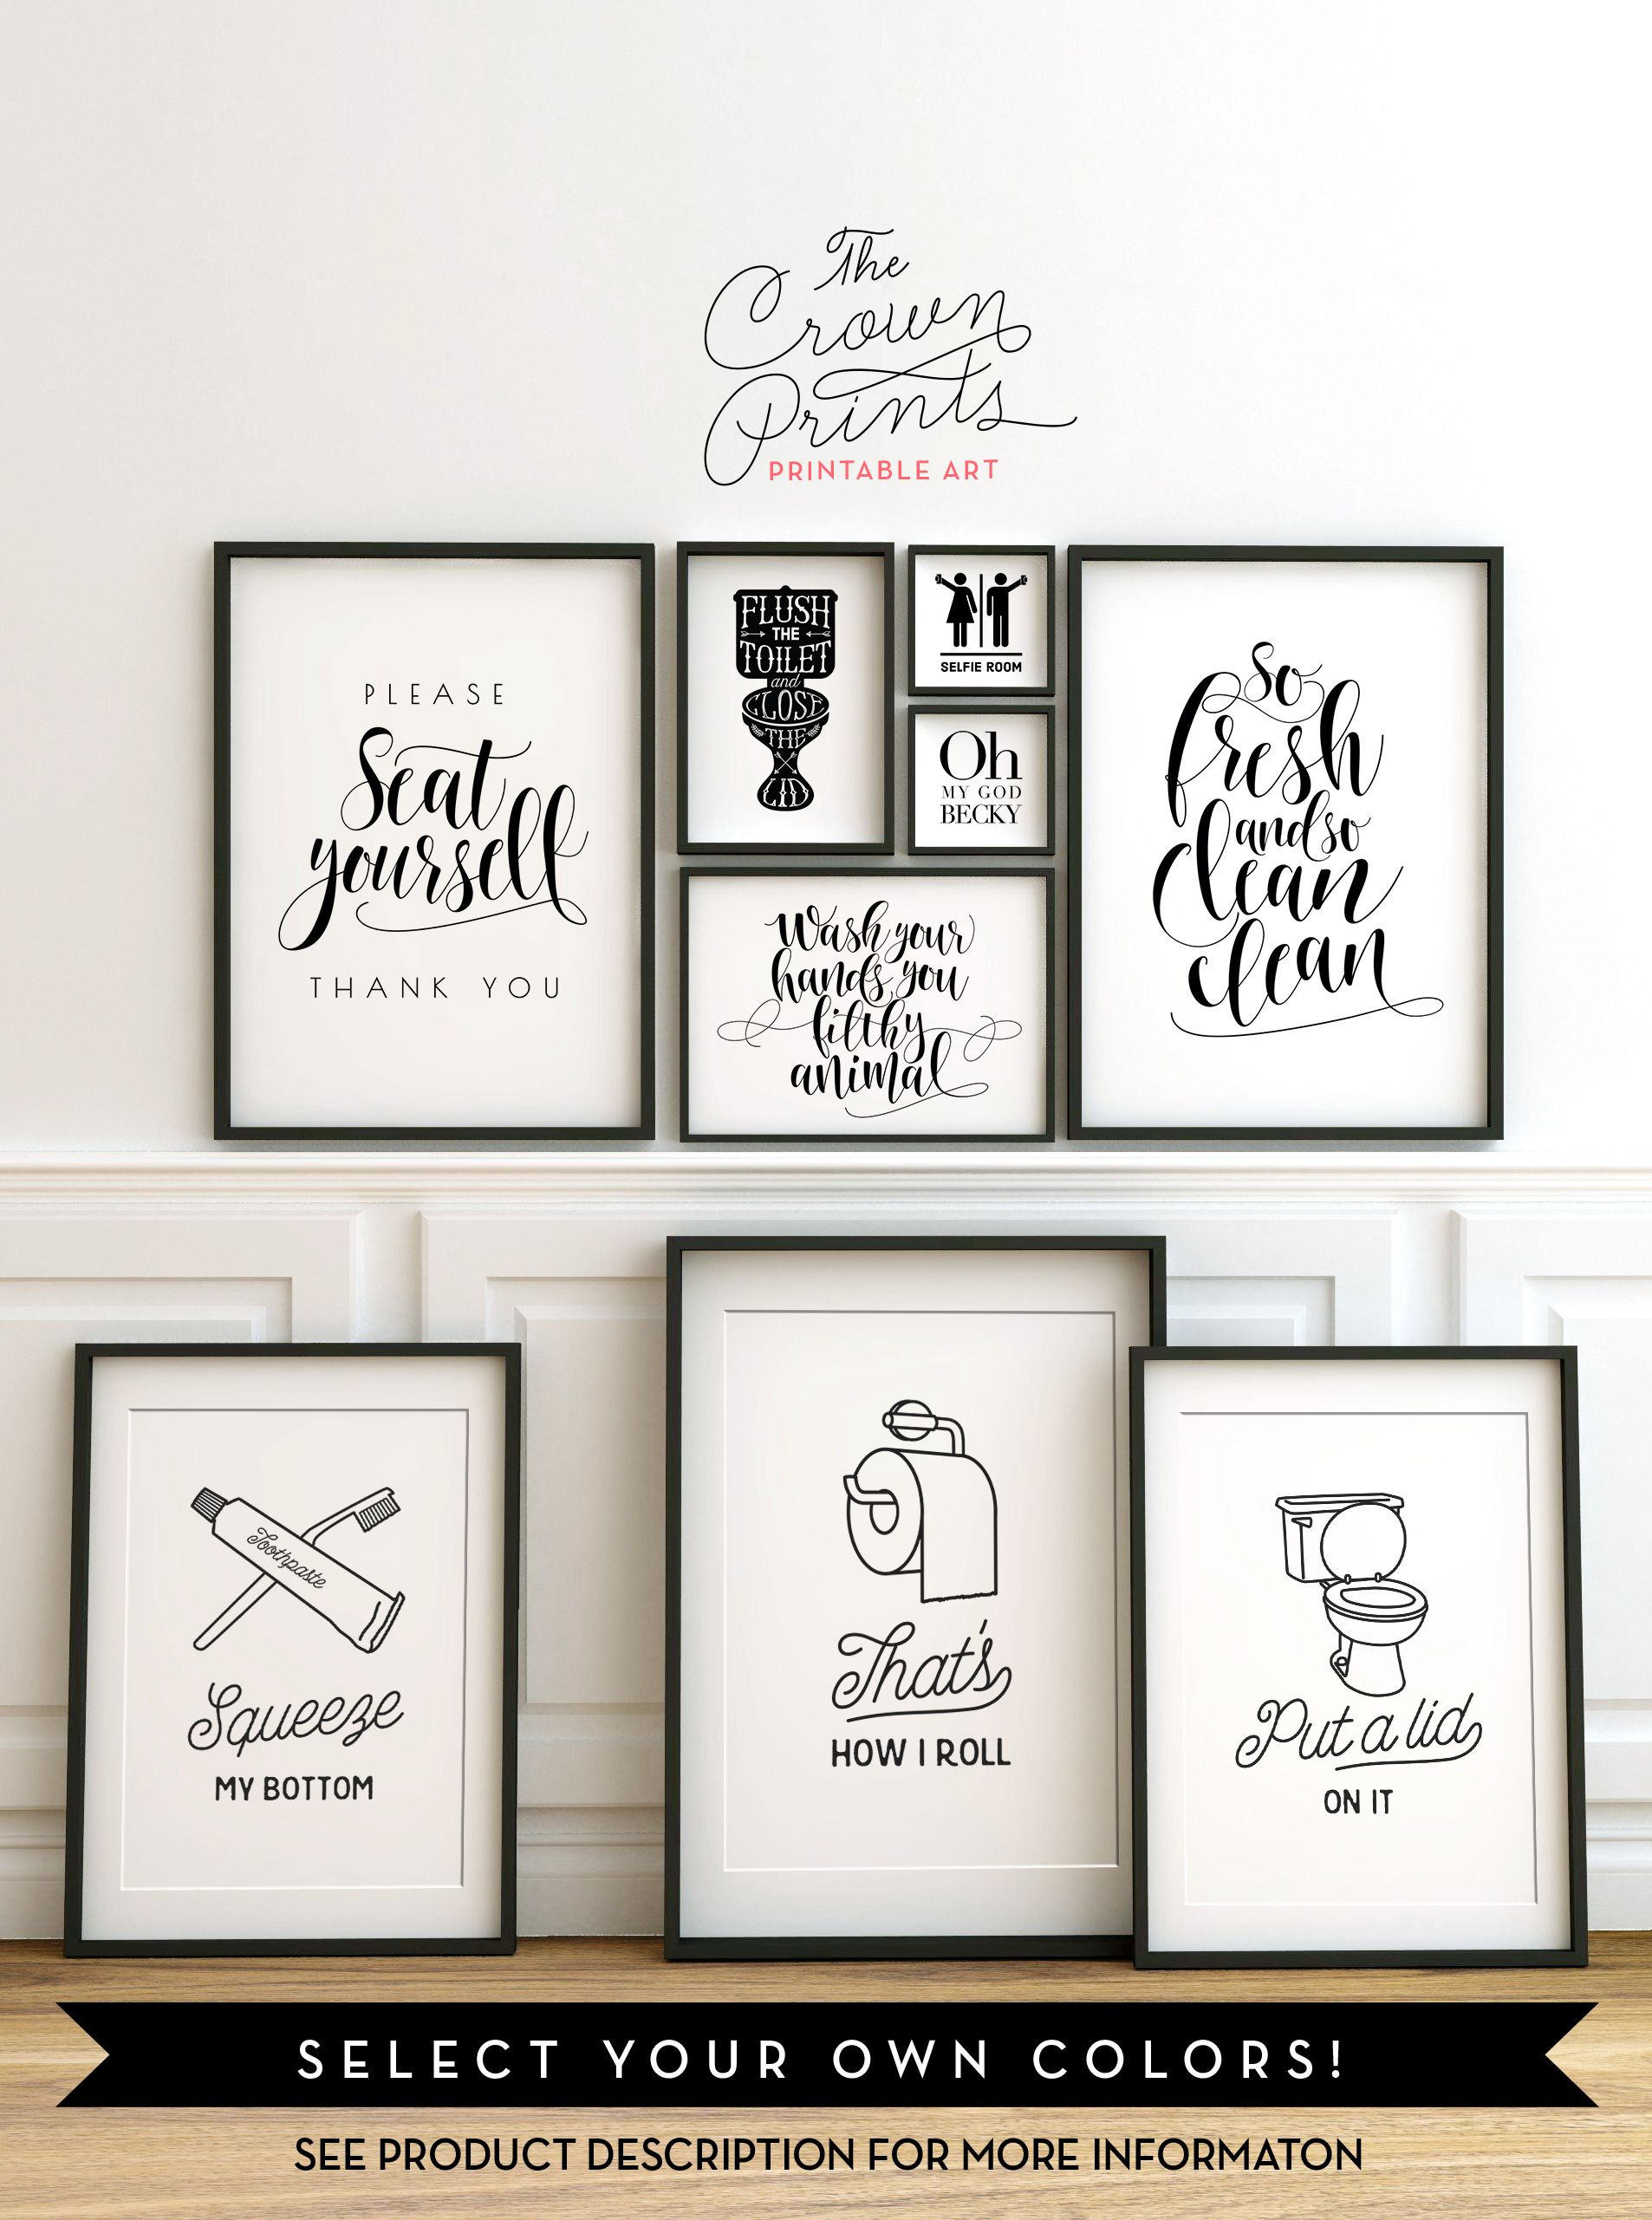 Wall Decor for the Bathroom Lovely Bathroom Wall Wording Cute Sayings Quotes Words Design Best